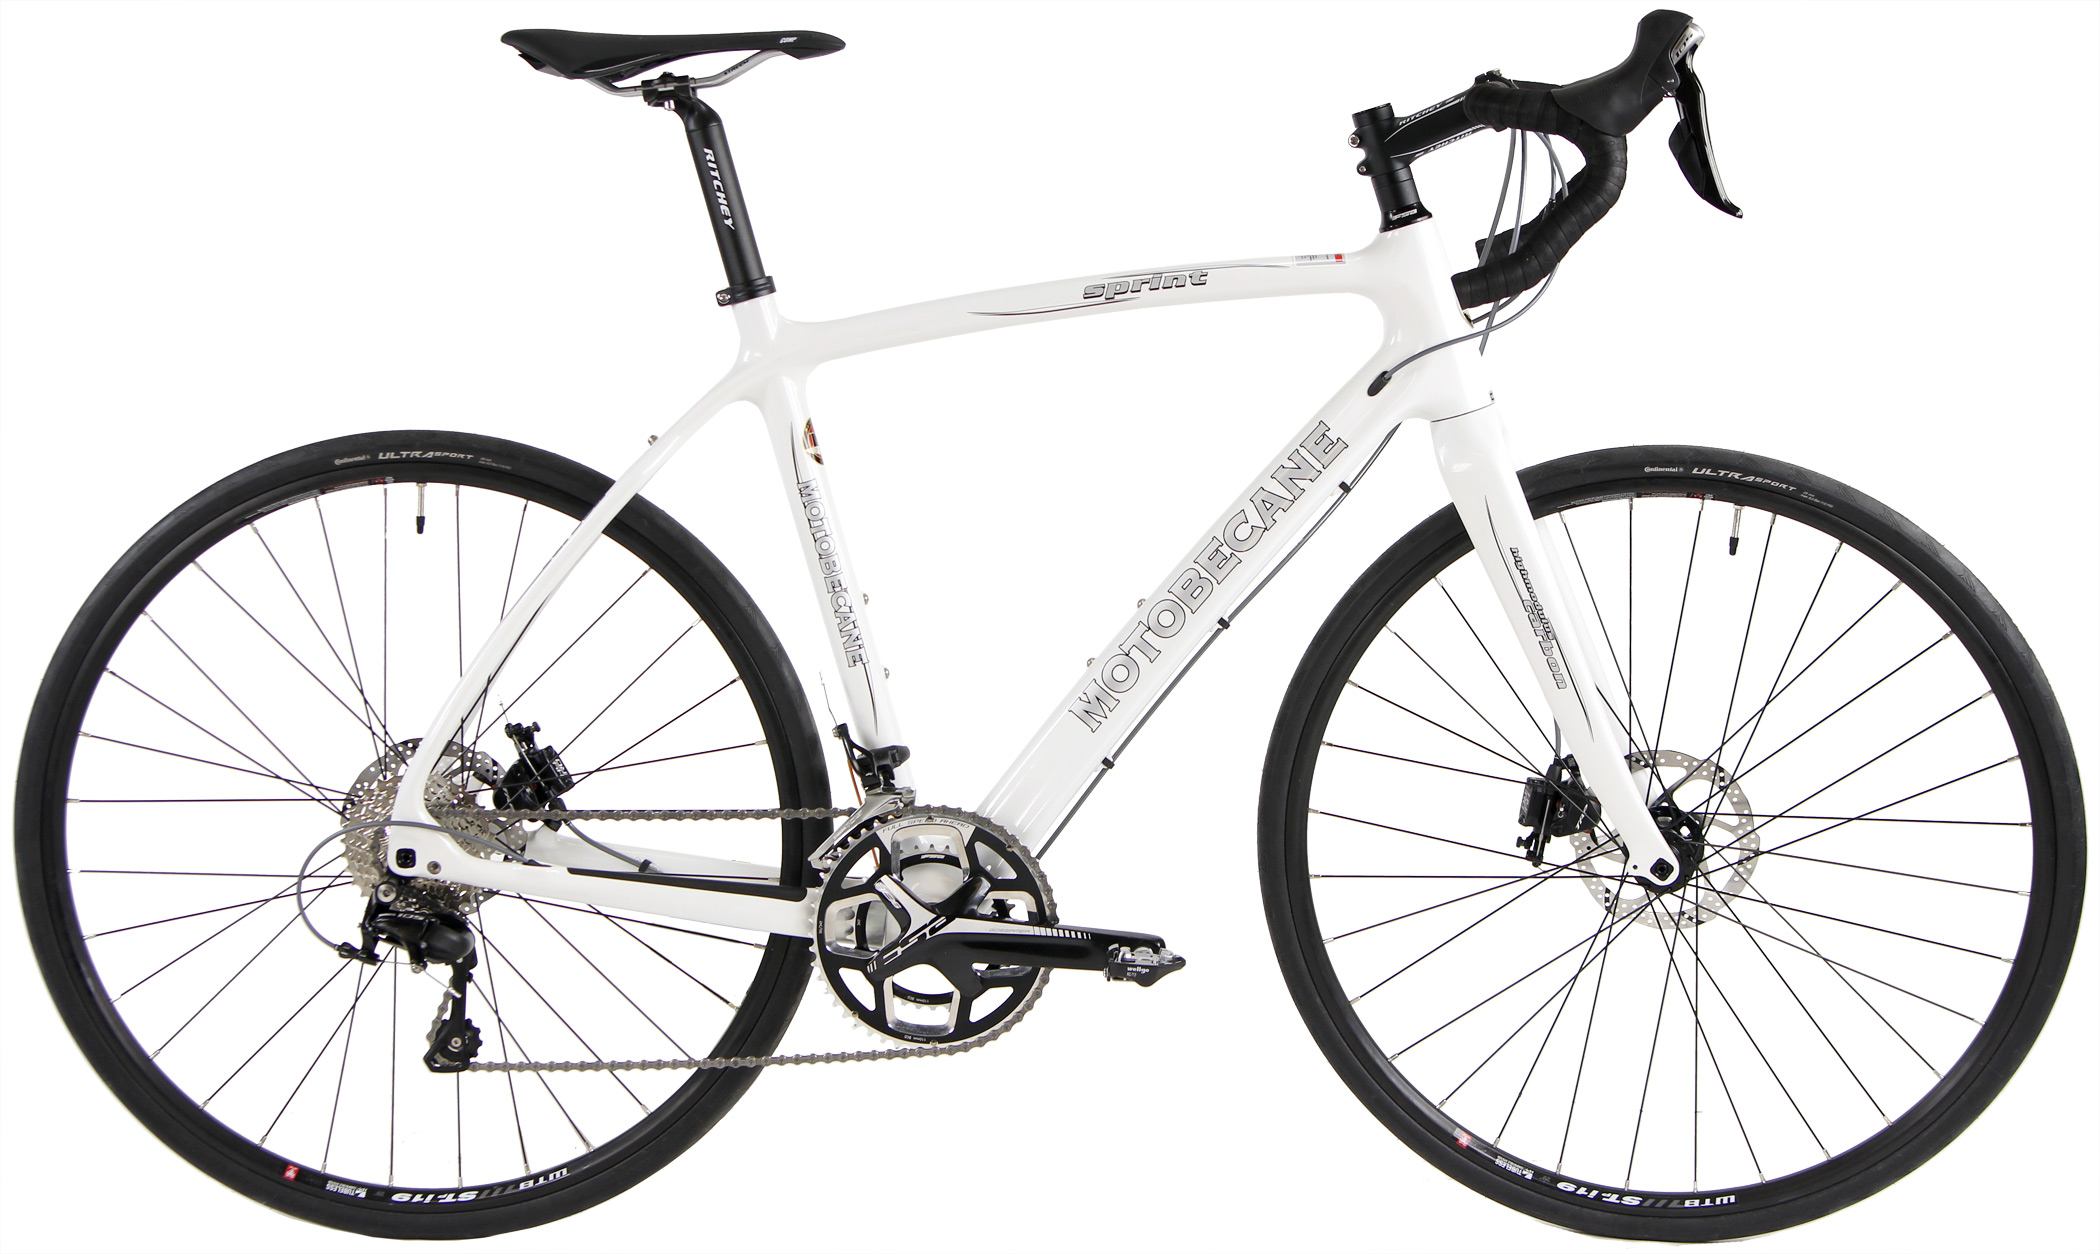 Bikes Motobecane Sprint CF Disc Comp Carbon Fiber Disc Brake Road Bike 105 Equipped Image